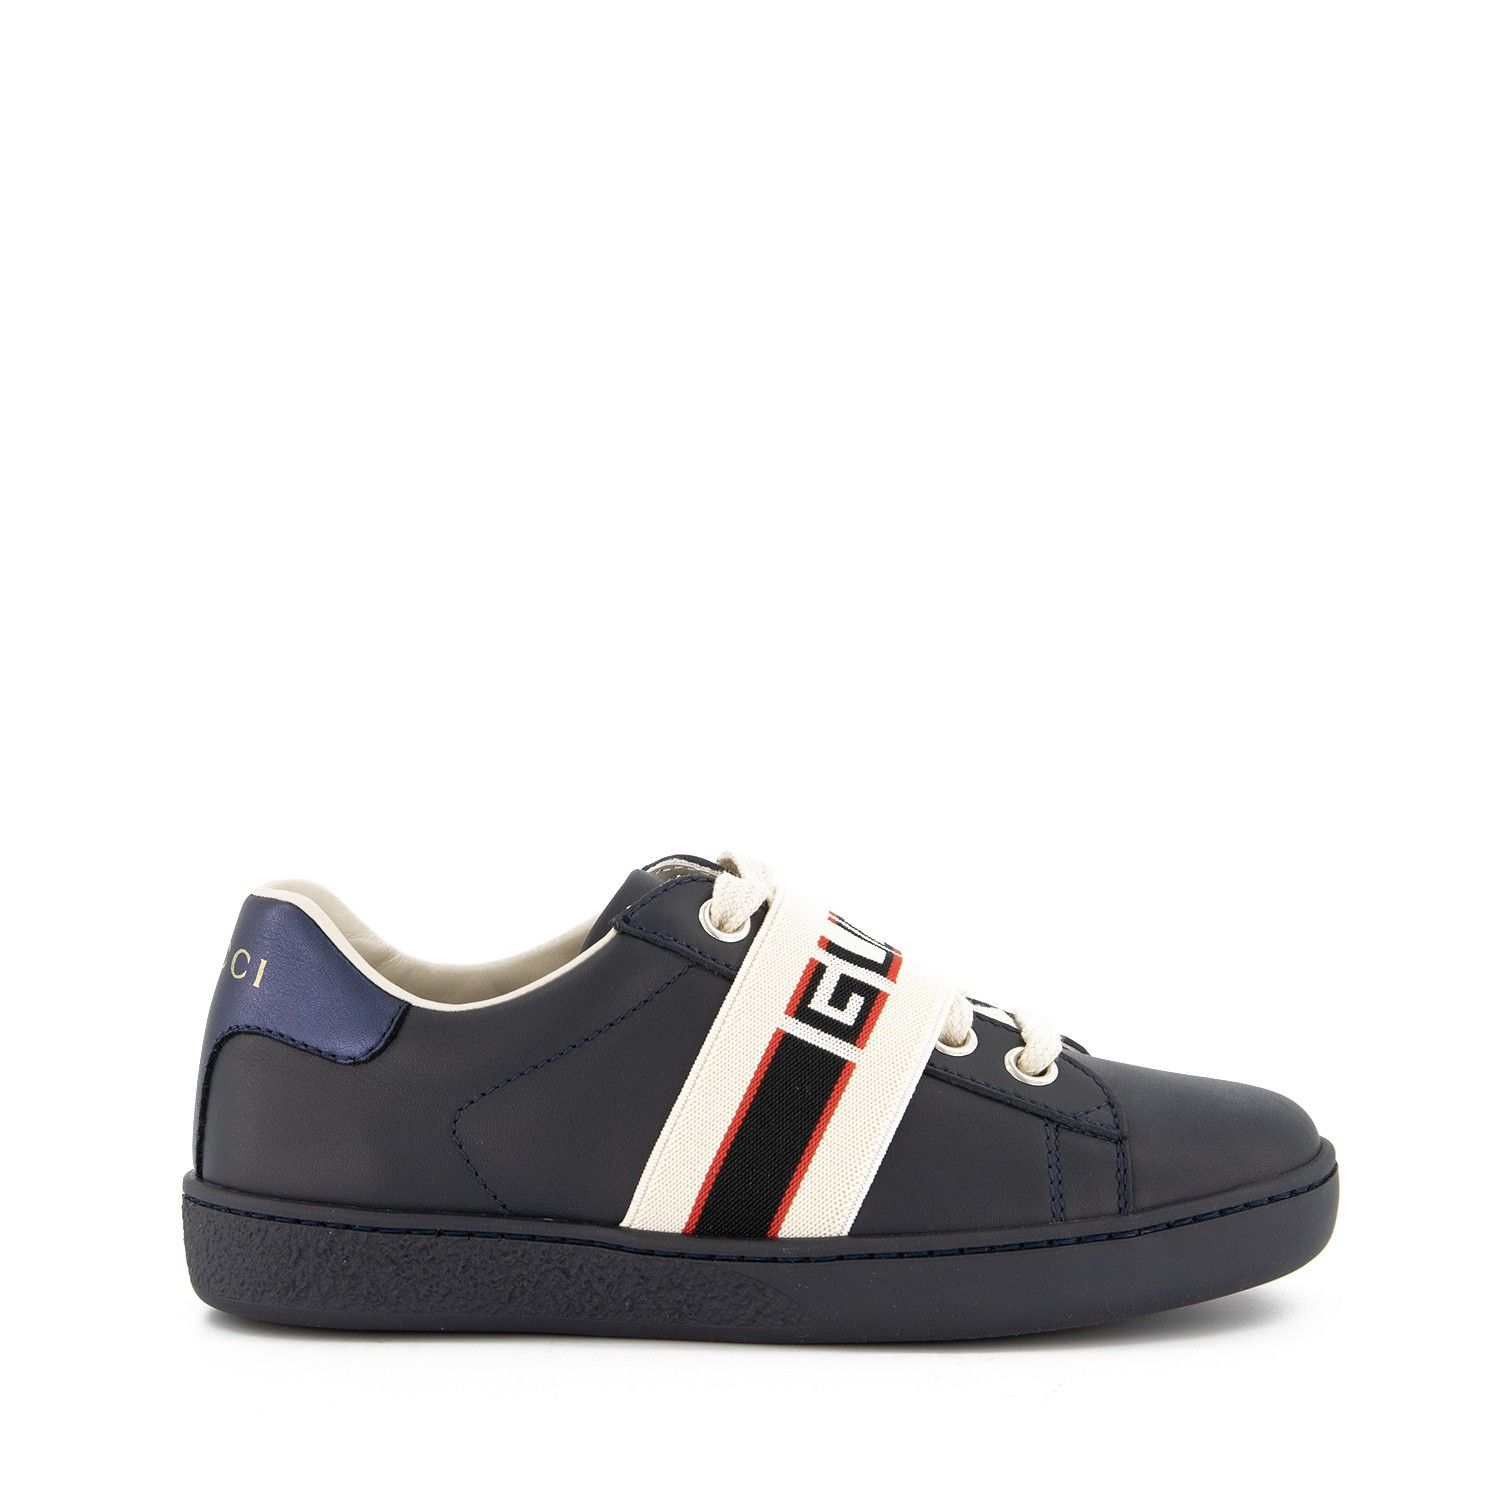 Picture of Gucci 553053 kids sneakers navy